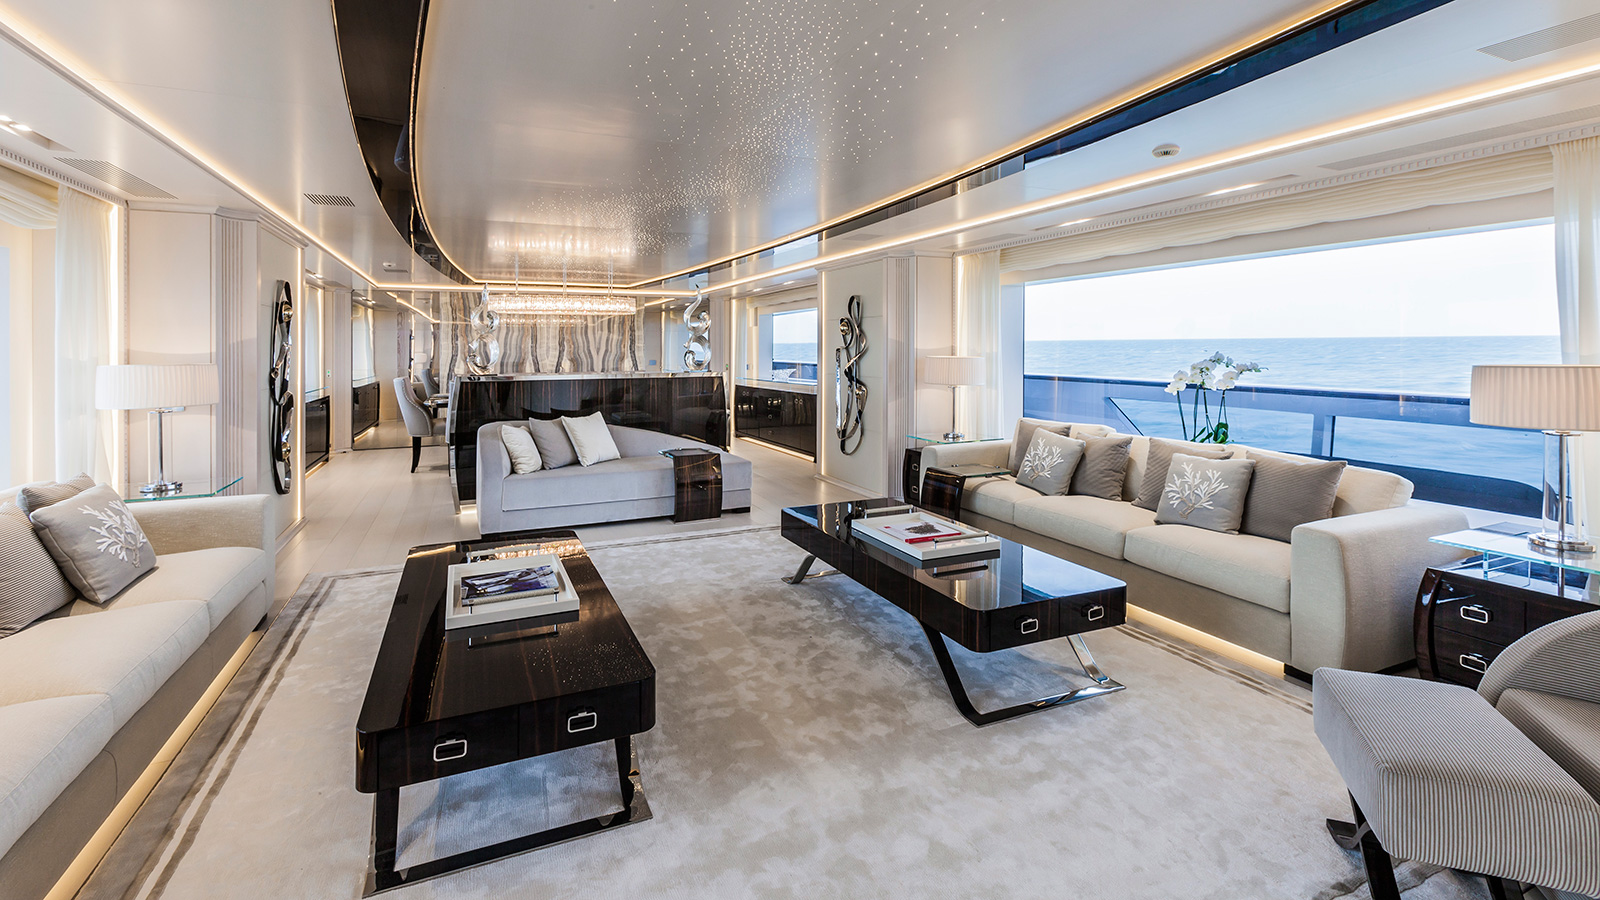 the-saloon-of-rossinavi-super-yacht-dining-room